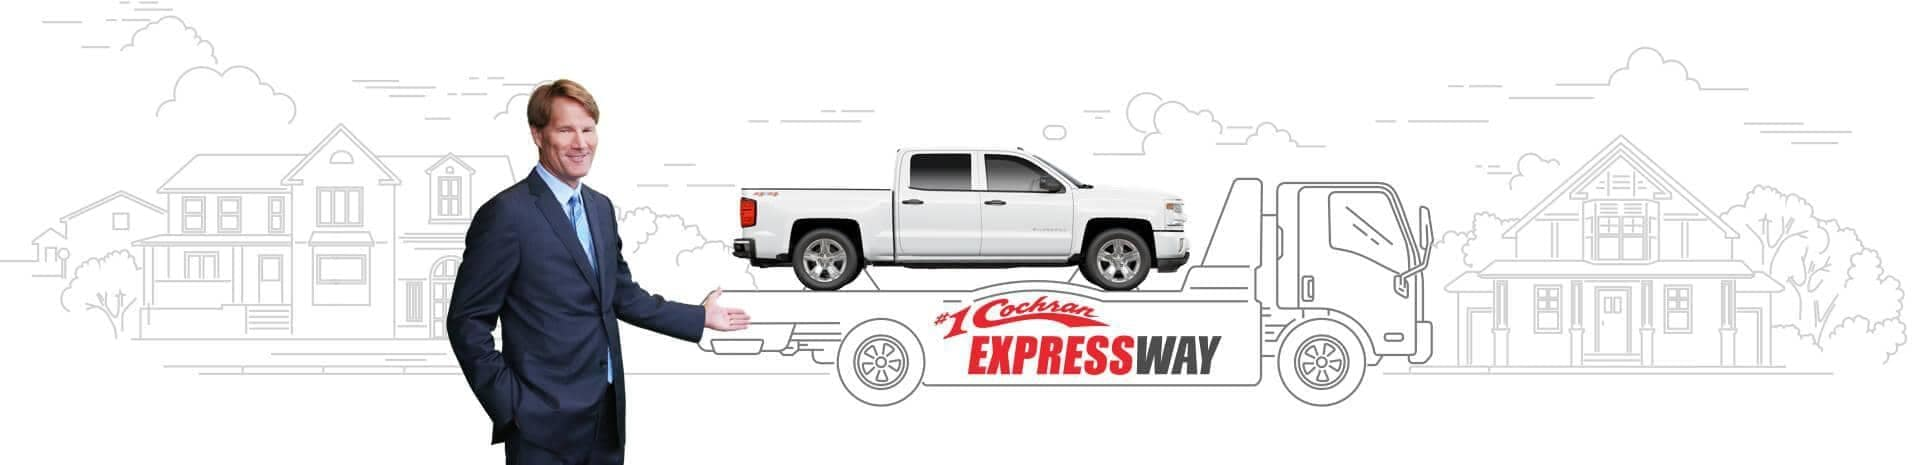 Cochran expressway banner with a car on a truck